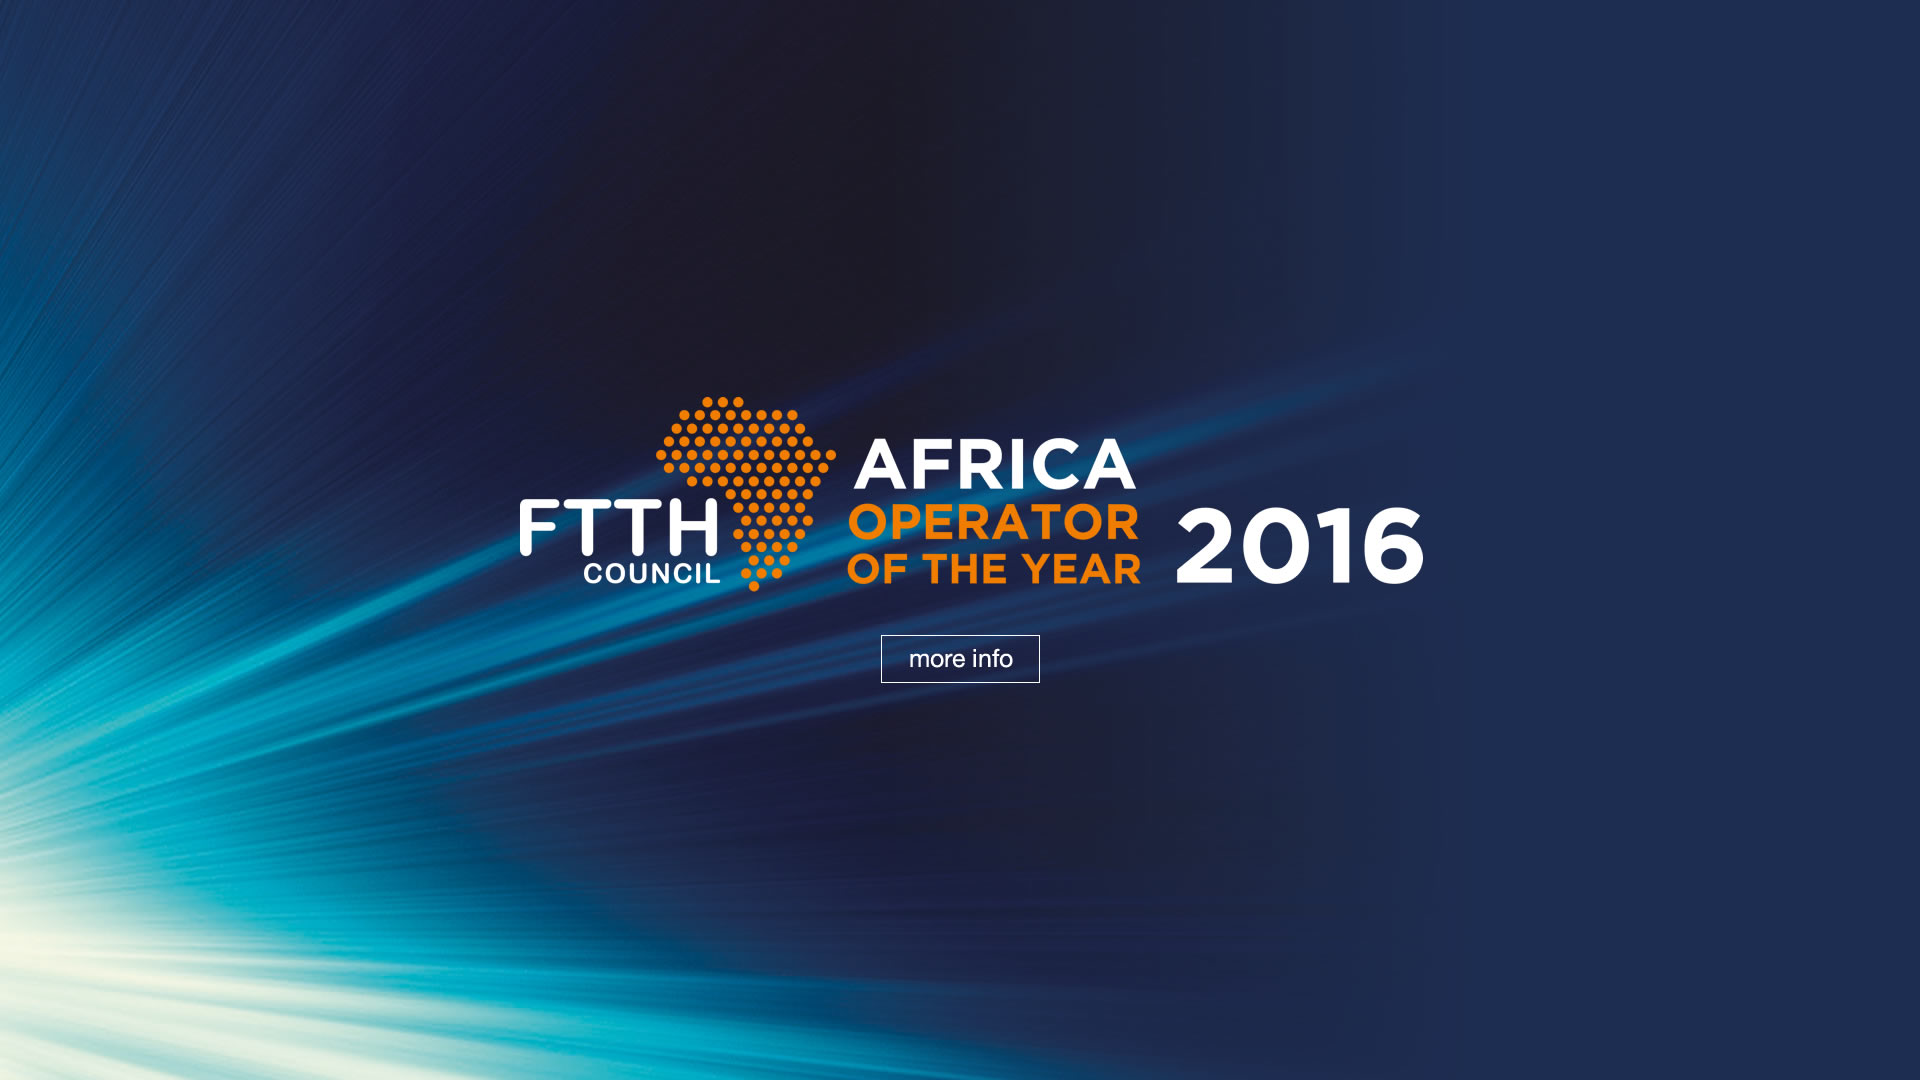 africa-operator-of-the-year-2016